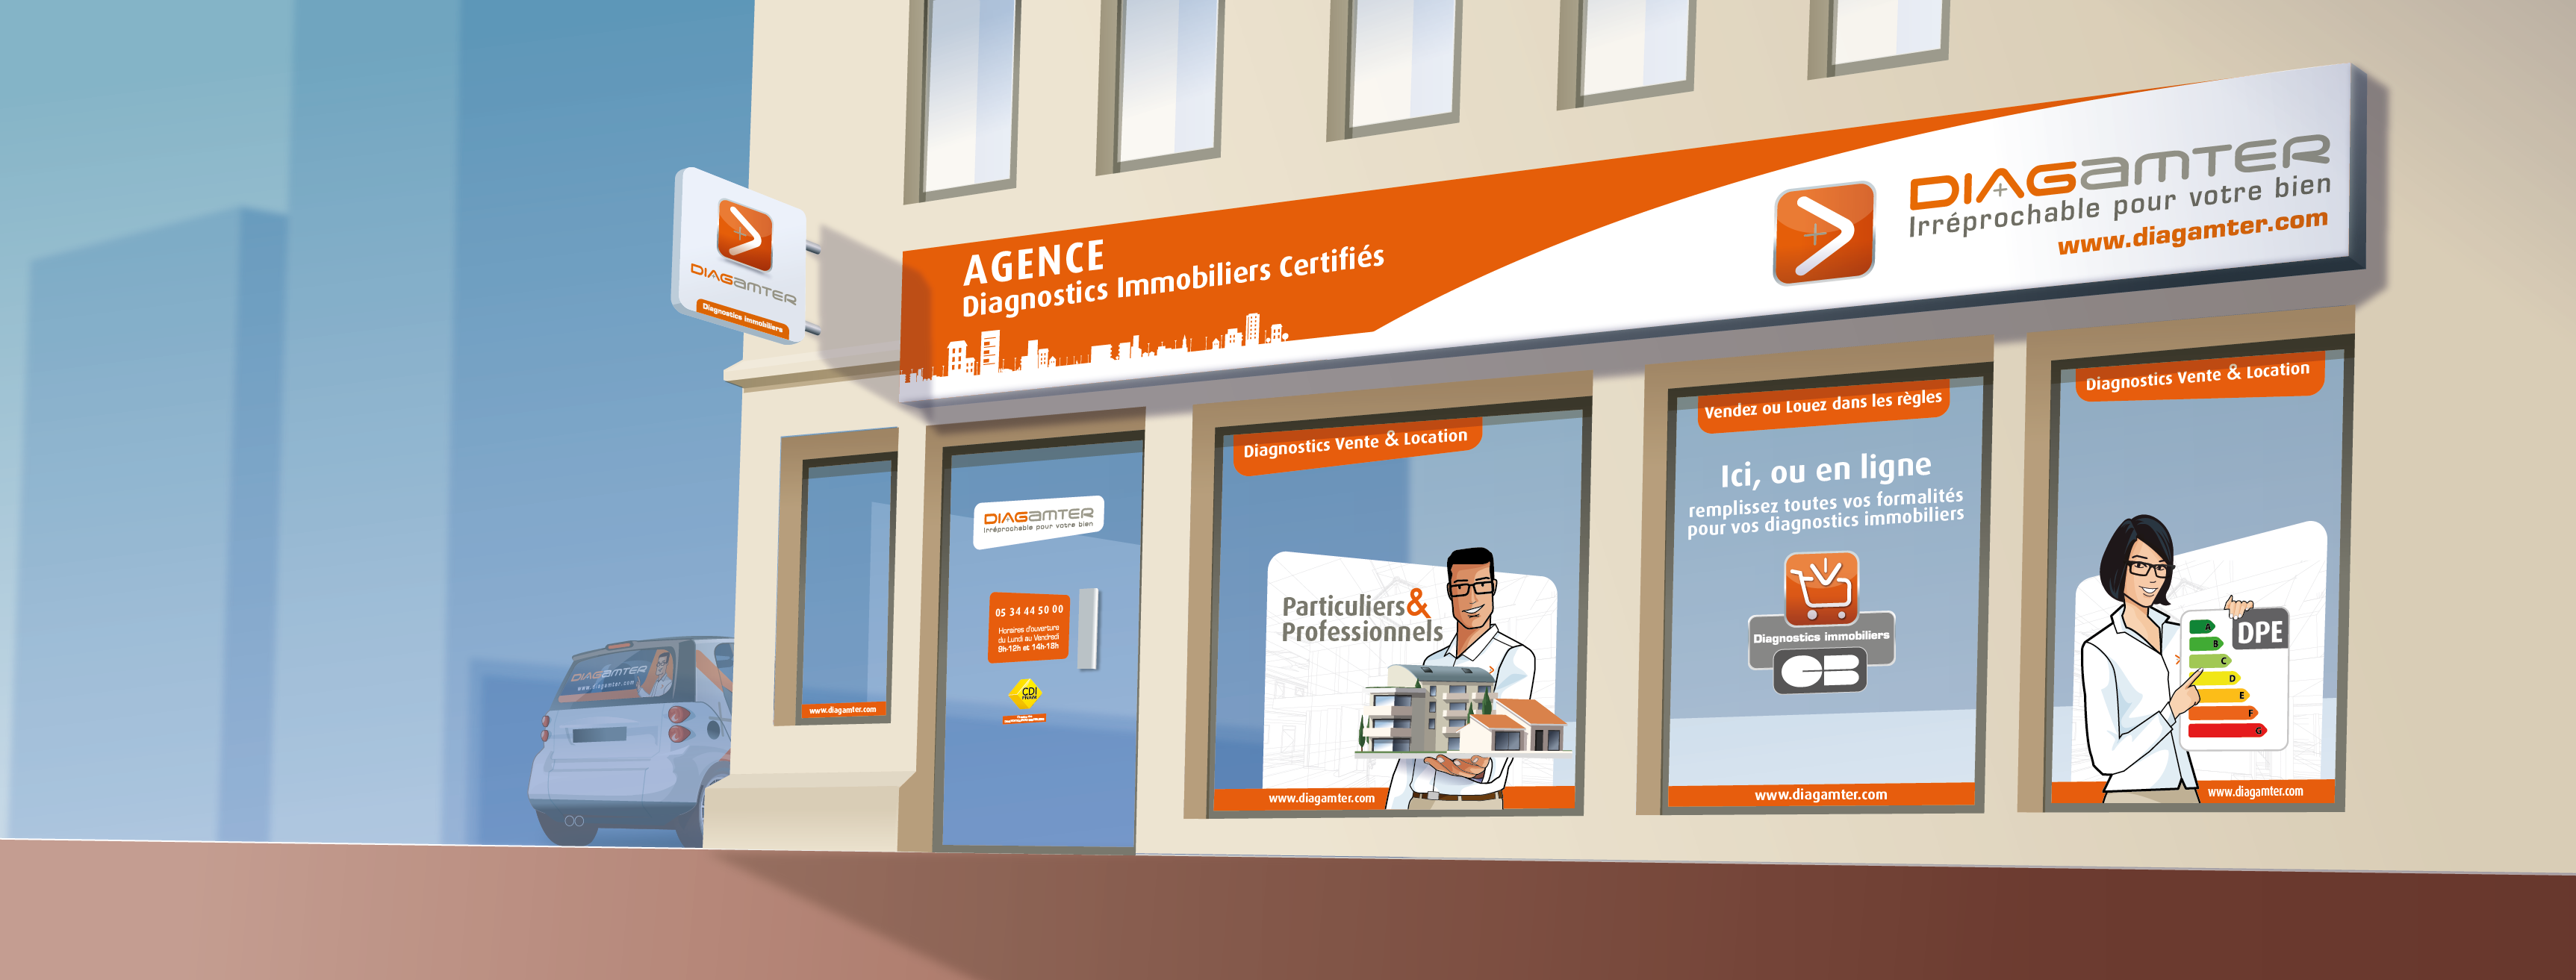 Local commercial d'une agence Diagamter de diagnostic immobilier.